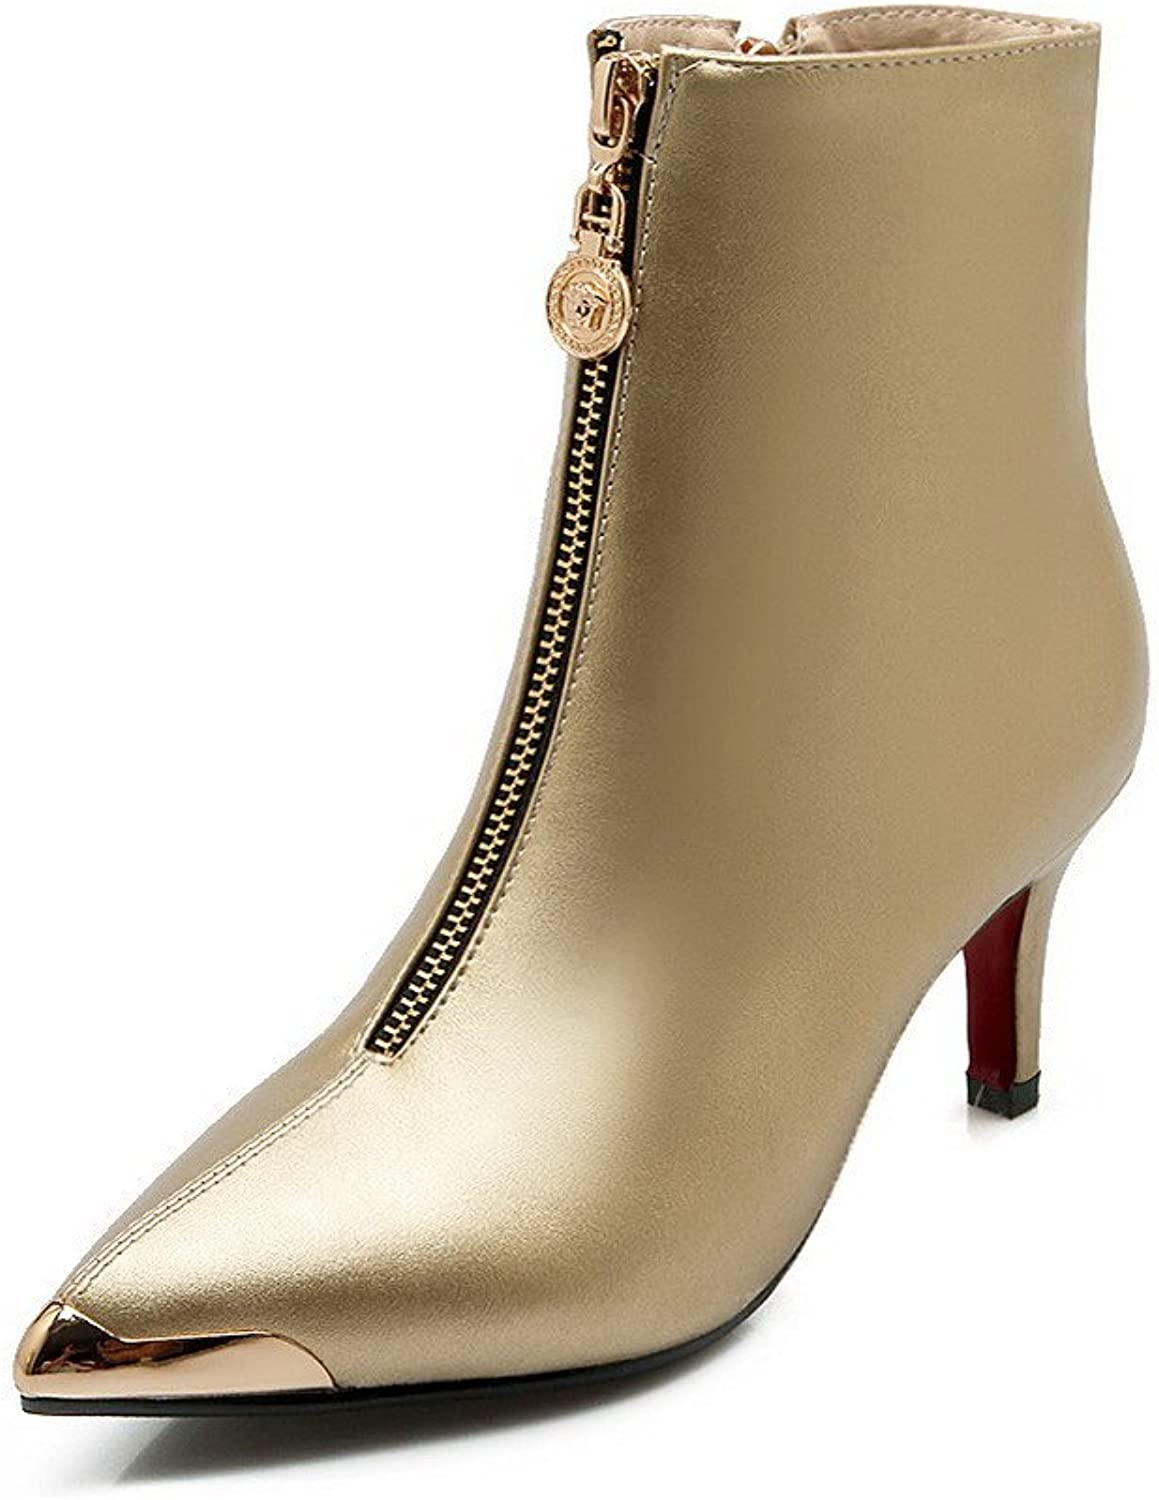 AmoonyFashion Women's Pointed-Toe Closed-Toe High-Heels Boots with Metal Decoration